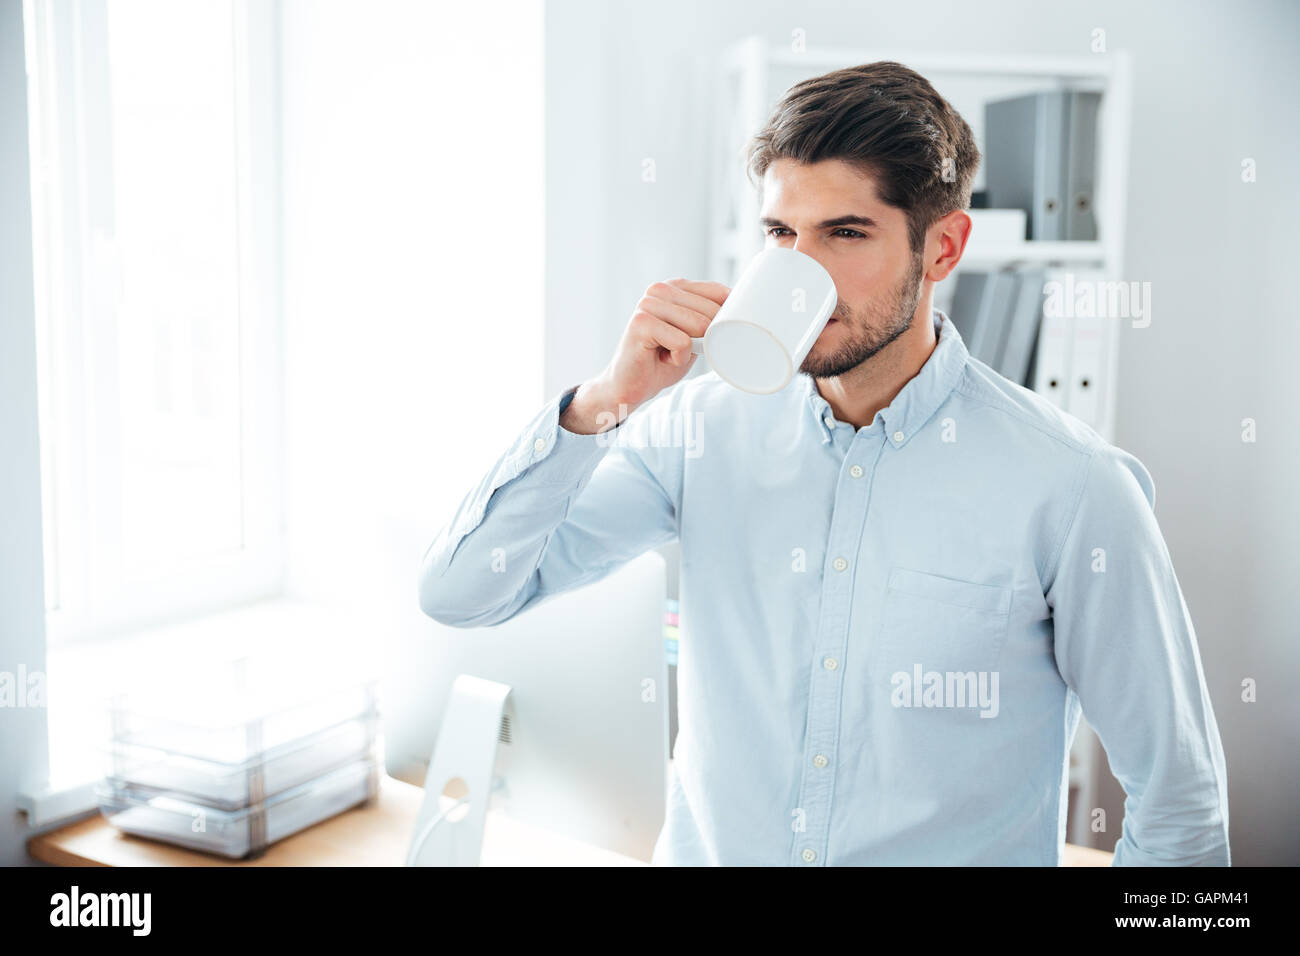 Handsome young man standing and drinking coffee in office - Stock Image